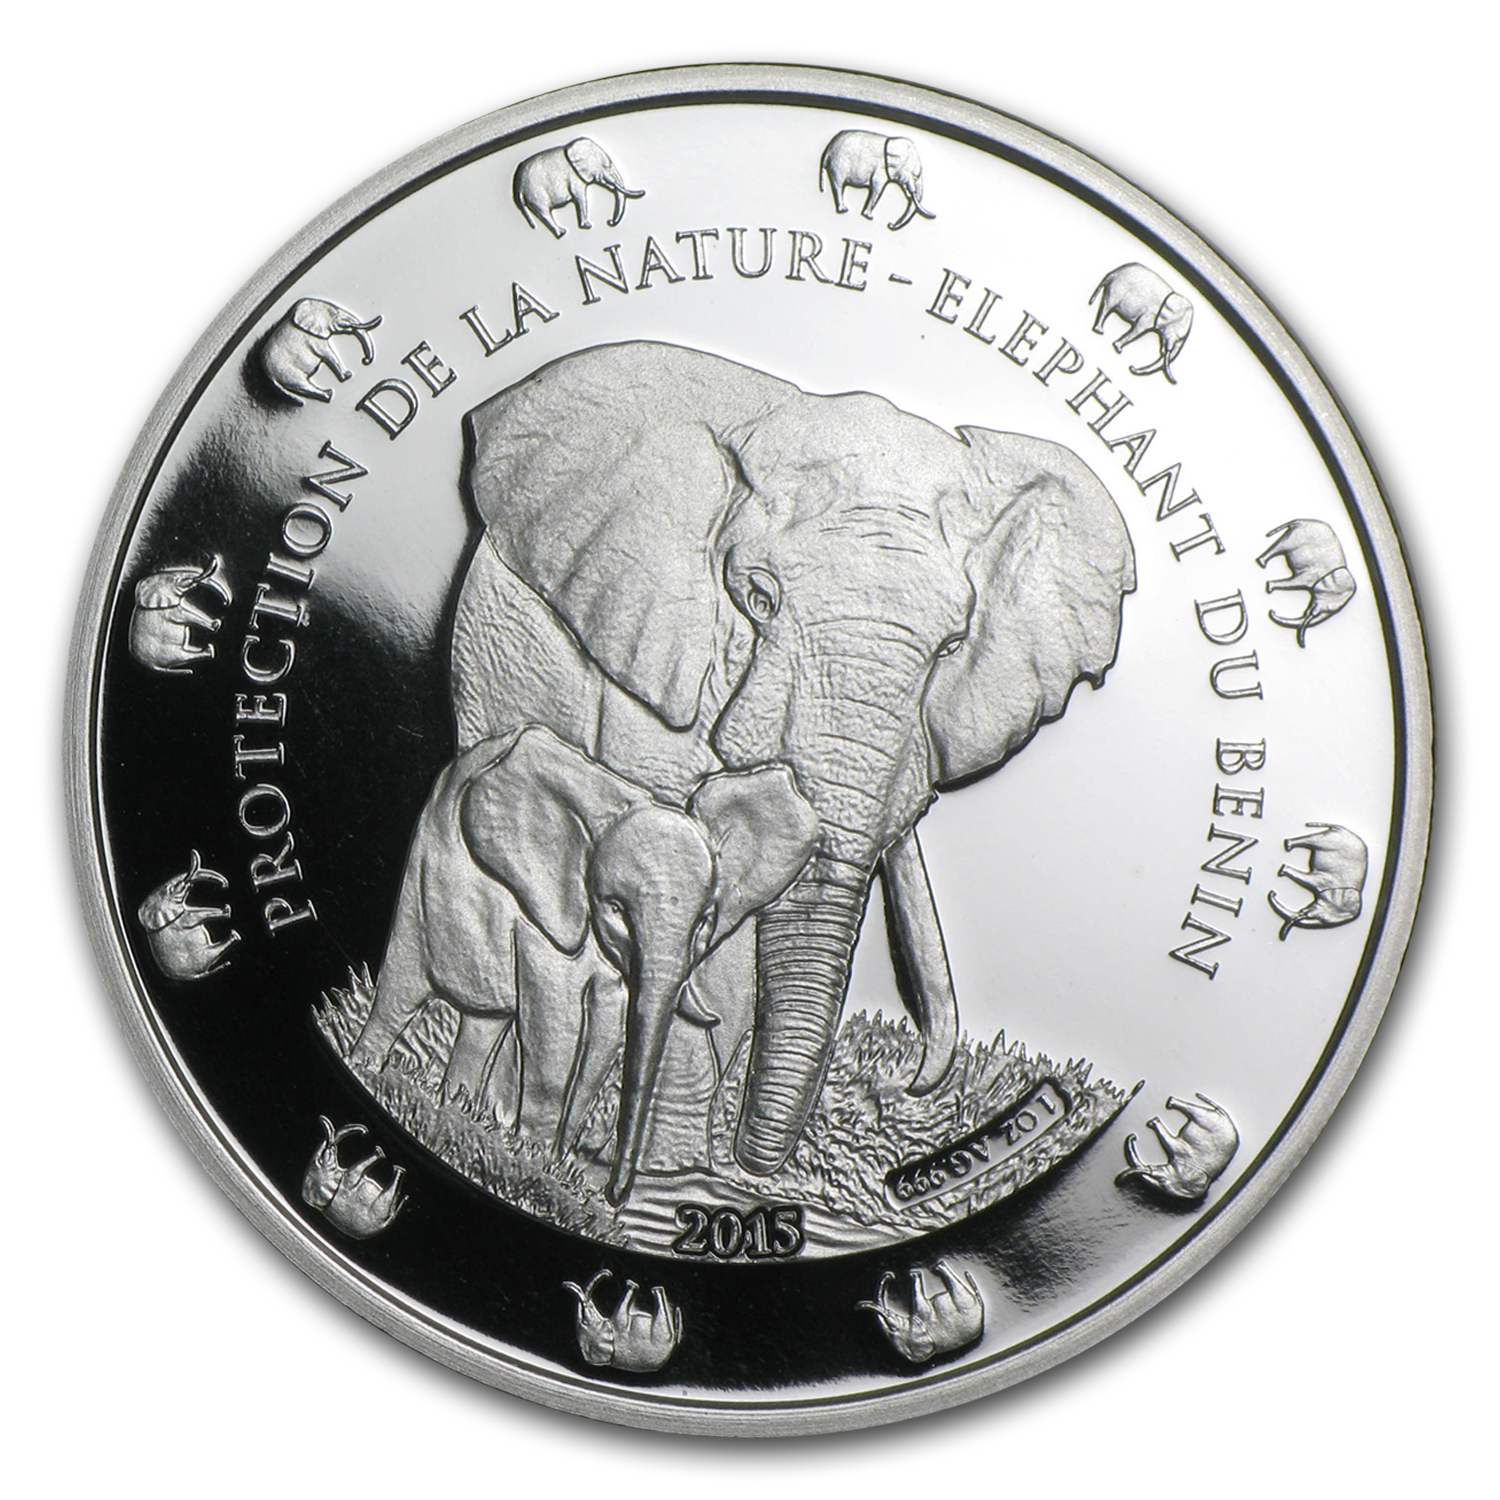 2015 Benin 1 oz Silver Protection de la Nature Elephant